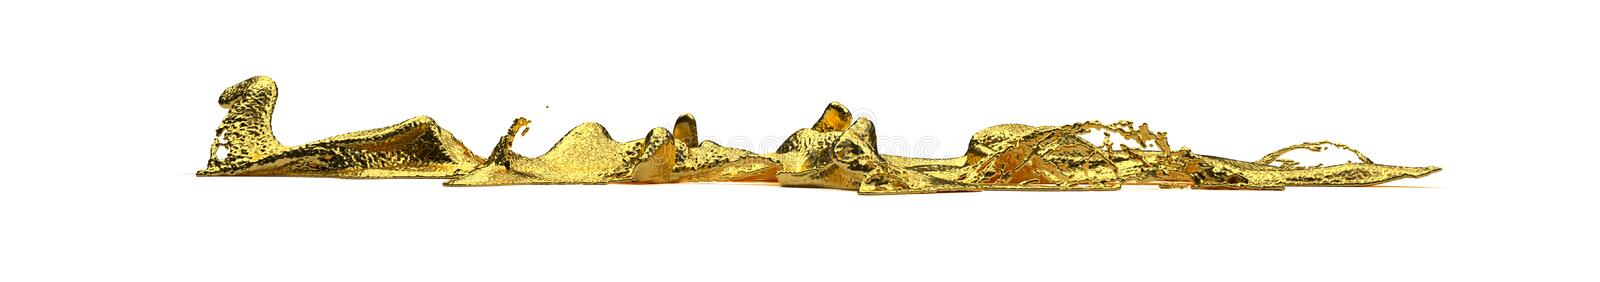 Liguid gold splash. Gold splash to the floor. path included. perfect for advertising models. save in days of sales stock photography